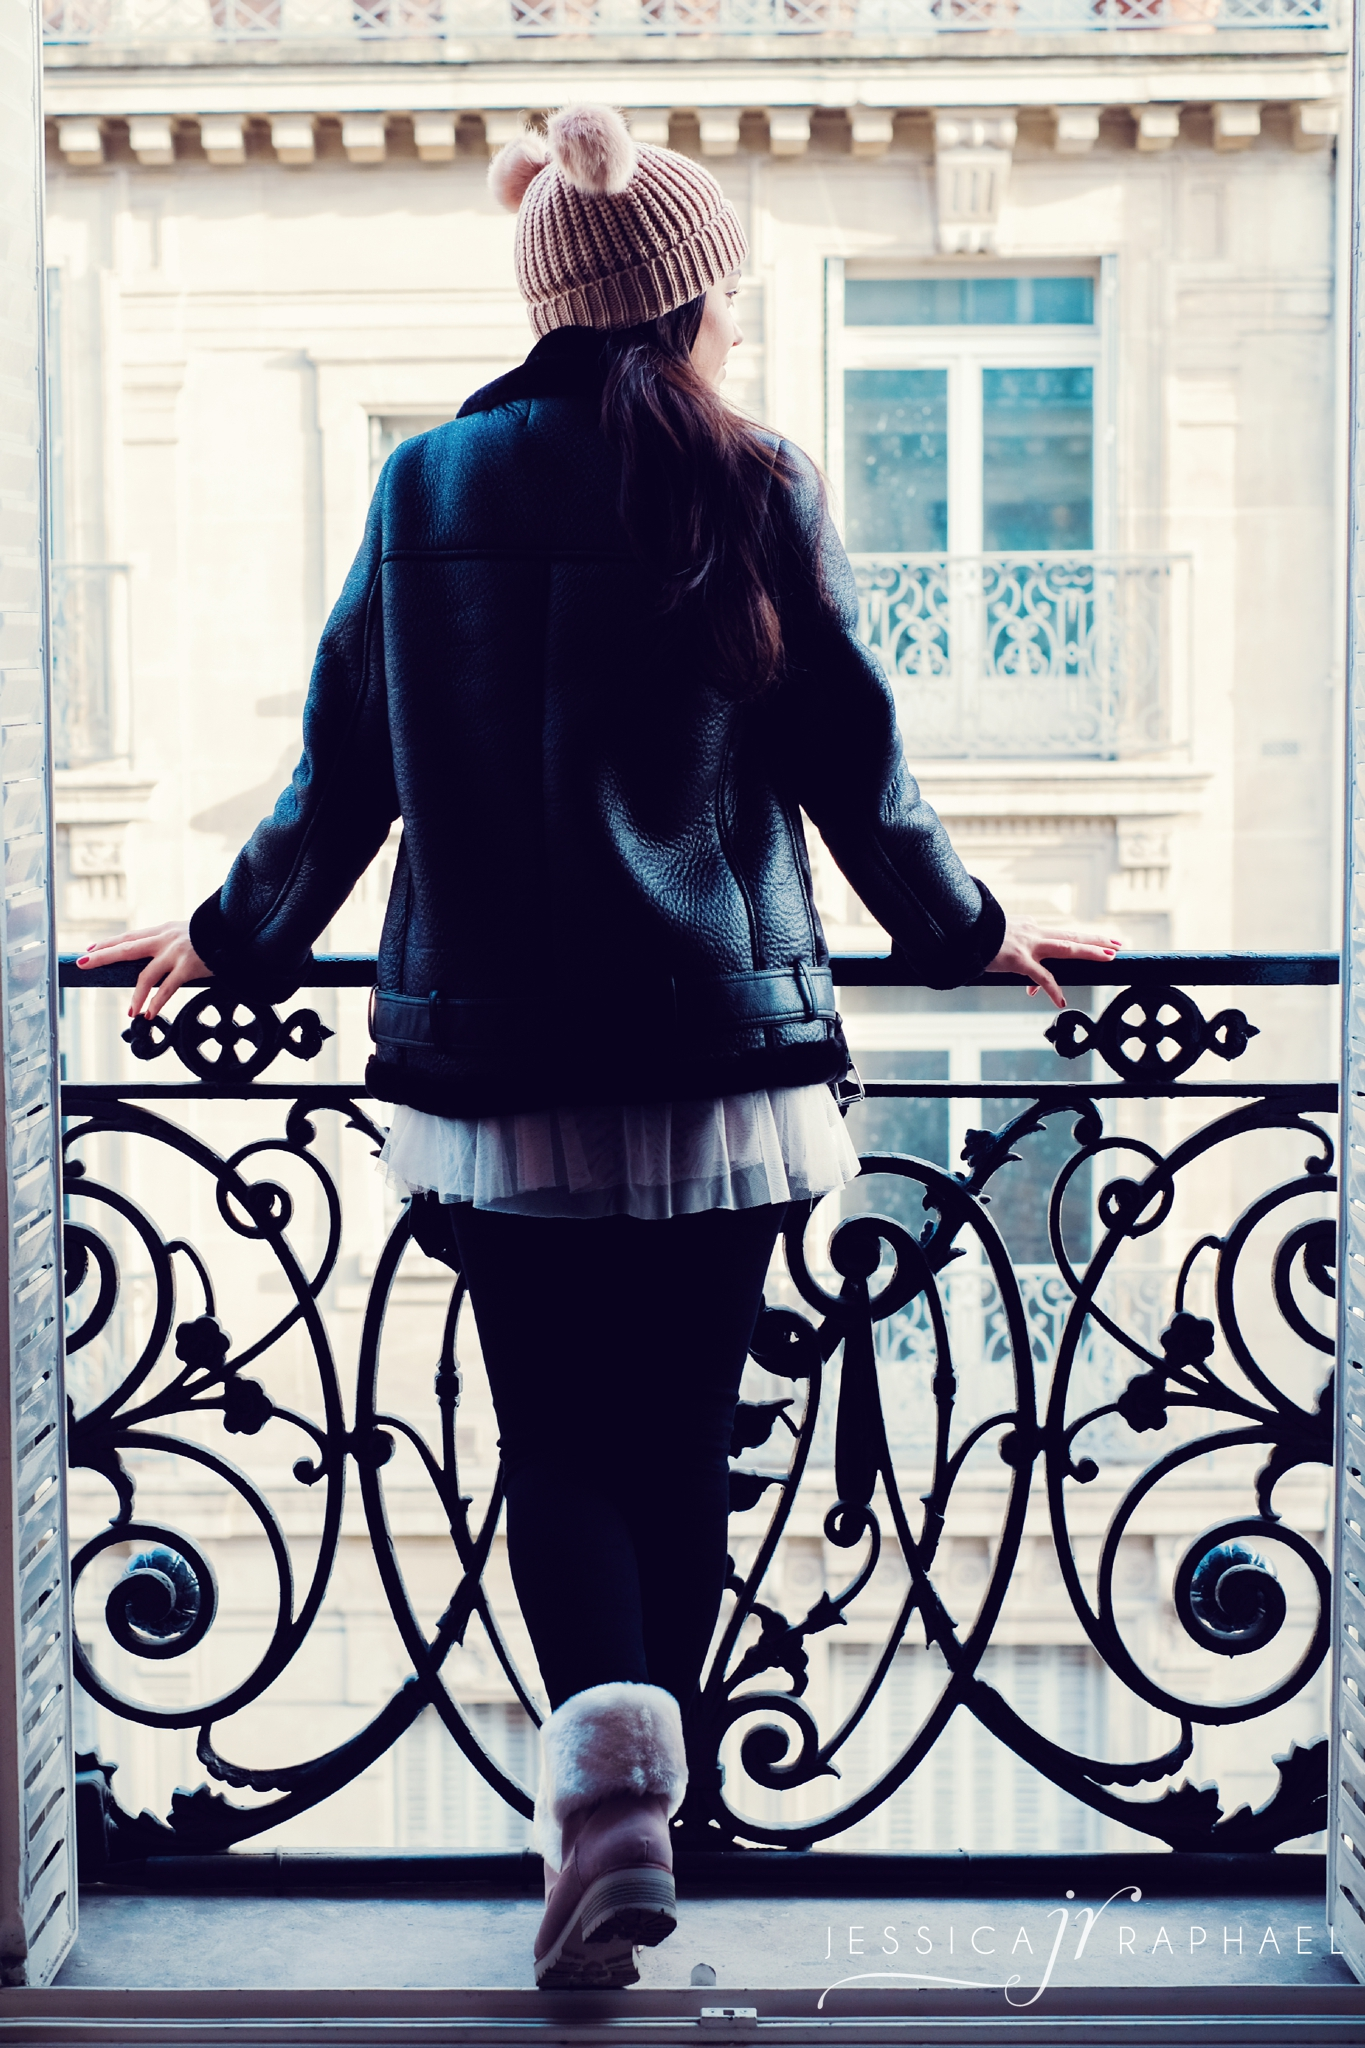 Our Parisian balcony. I am not wearing the ring as it needed to be re-sized, (in case you noticed).